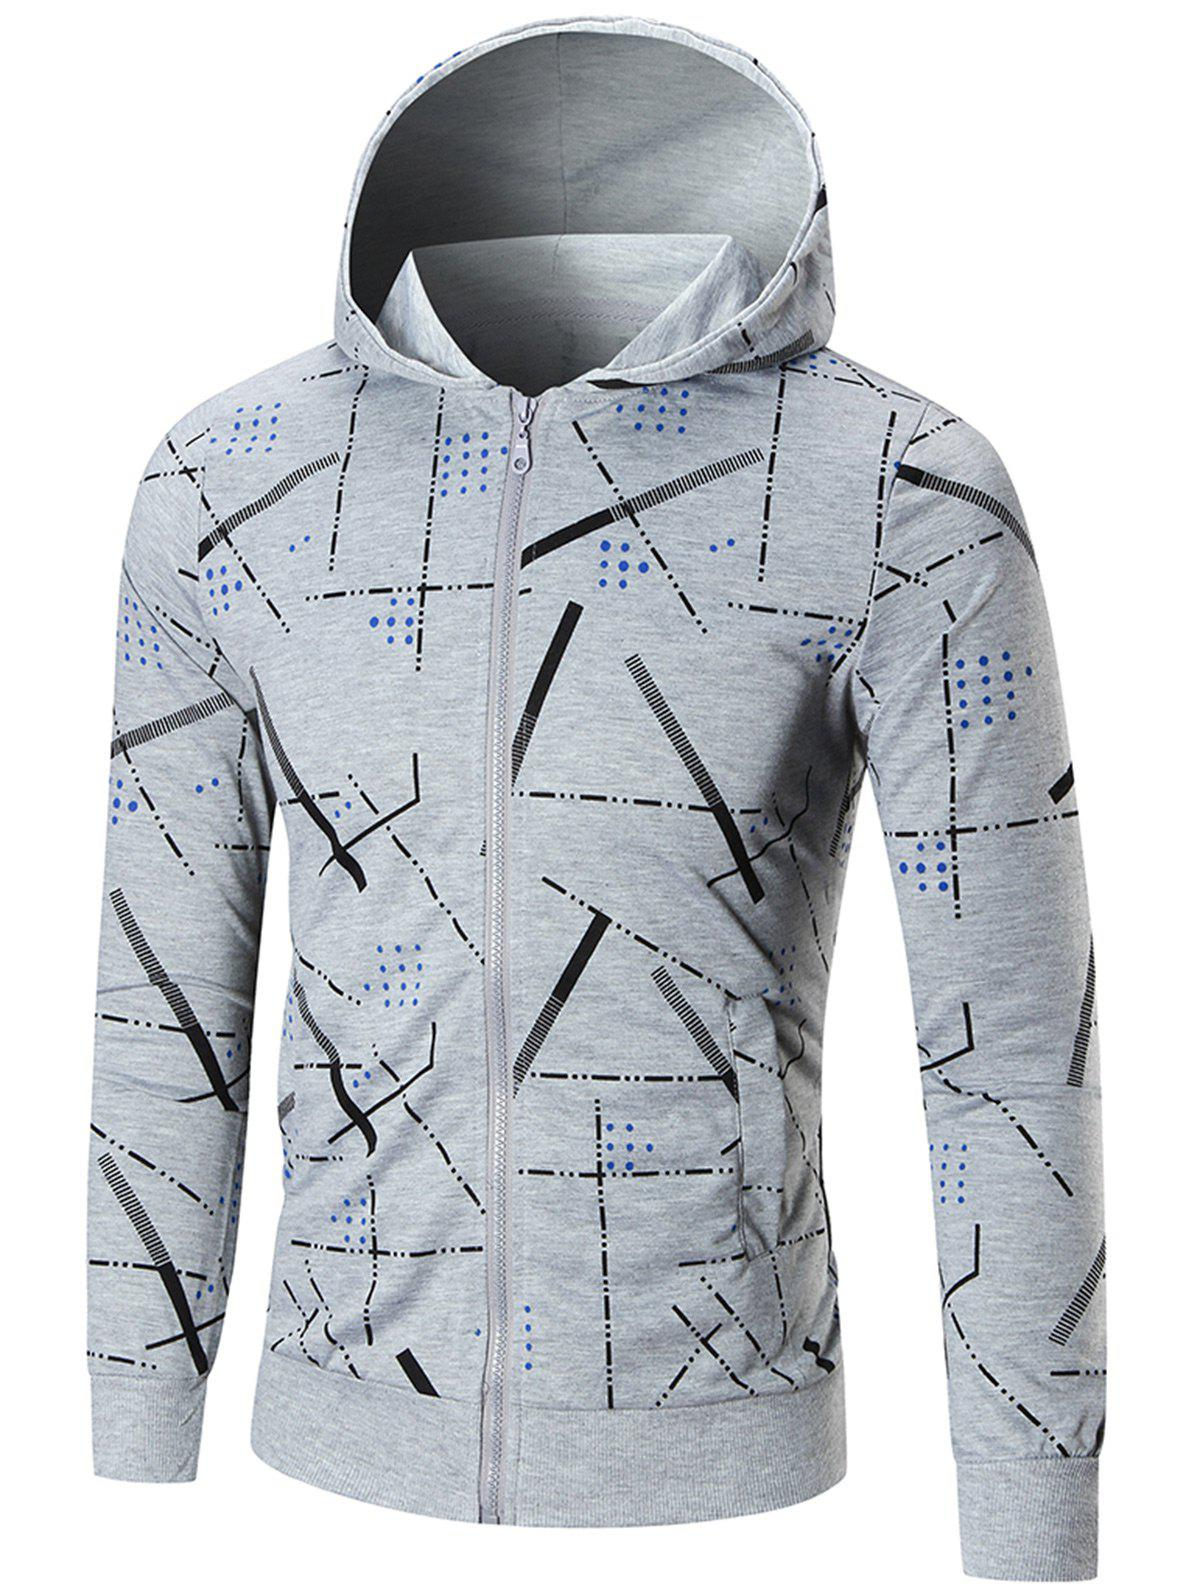 Slim Fit Printed Hoodie - GRAY 2XL